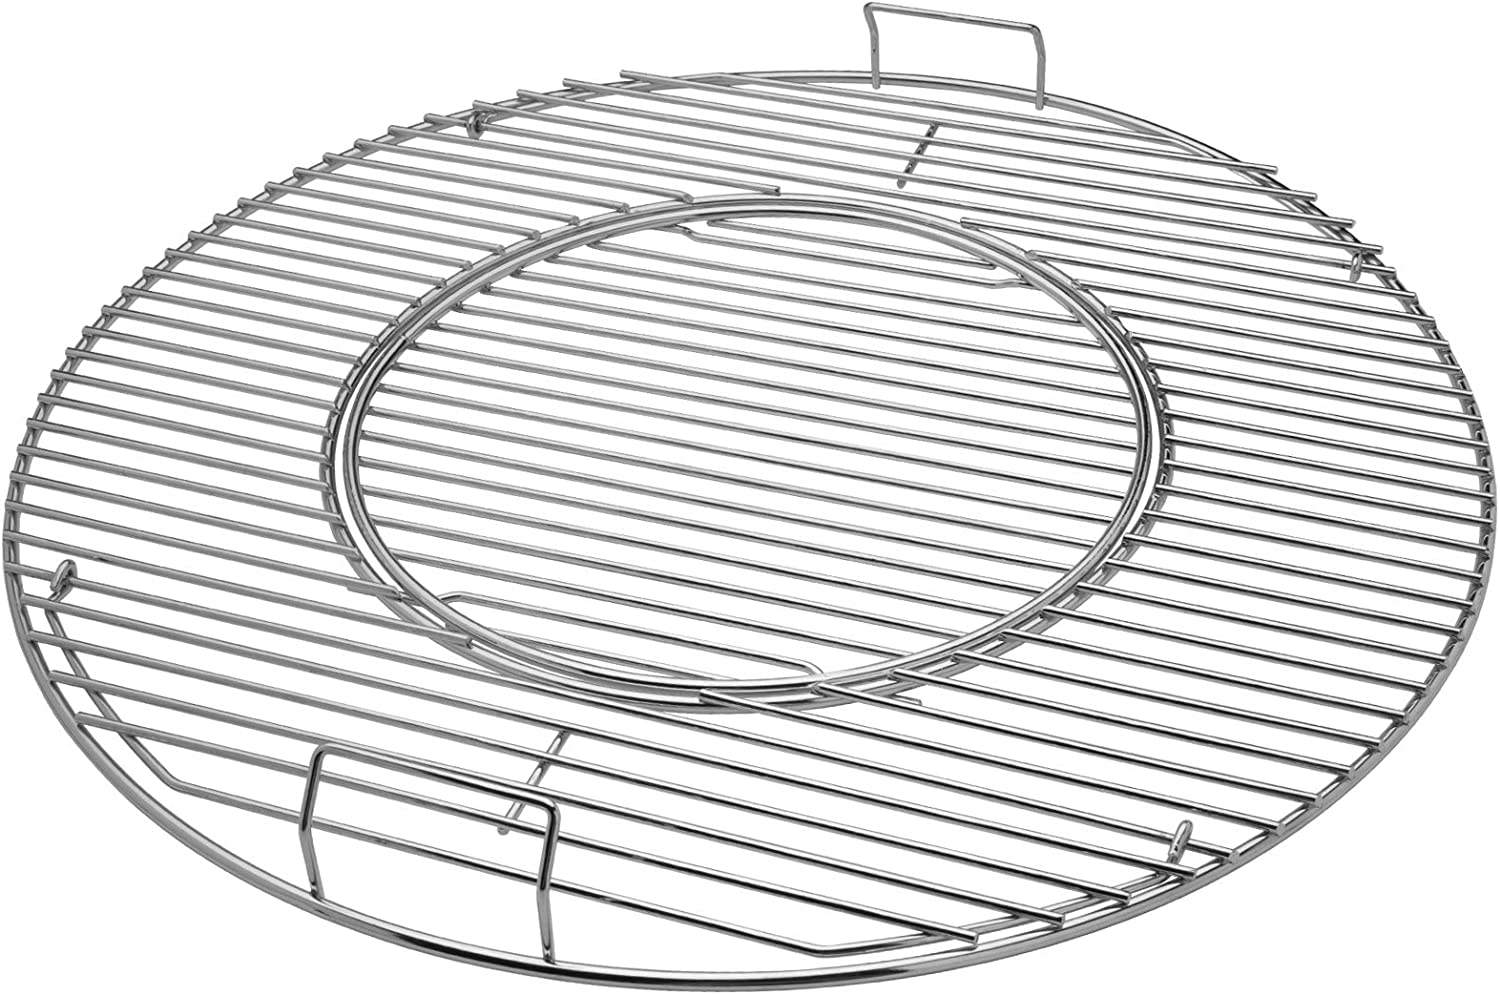 X Home Grill Grate for Weber 22.5 Inch Kettle, Charcoal, Performer, 8835 Gourmet BBQ System Hinged Cooking Grate, 21.5 x 21.5 Inch